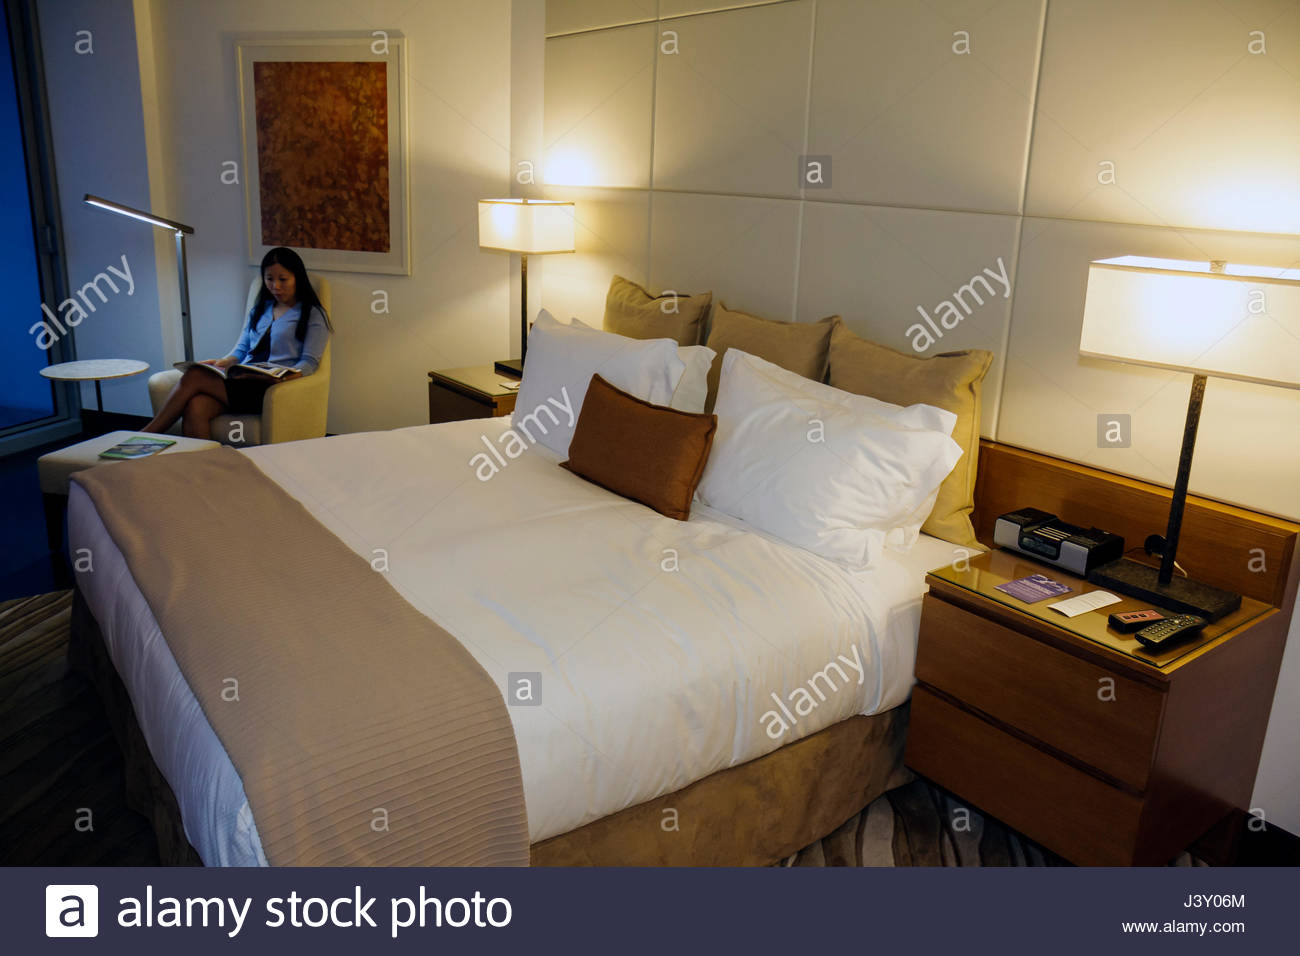 miami florida epic hotel luxury boutique lodging hospitality guest room bed lamps side tables flat screen tv modern decor asian